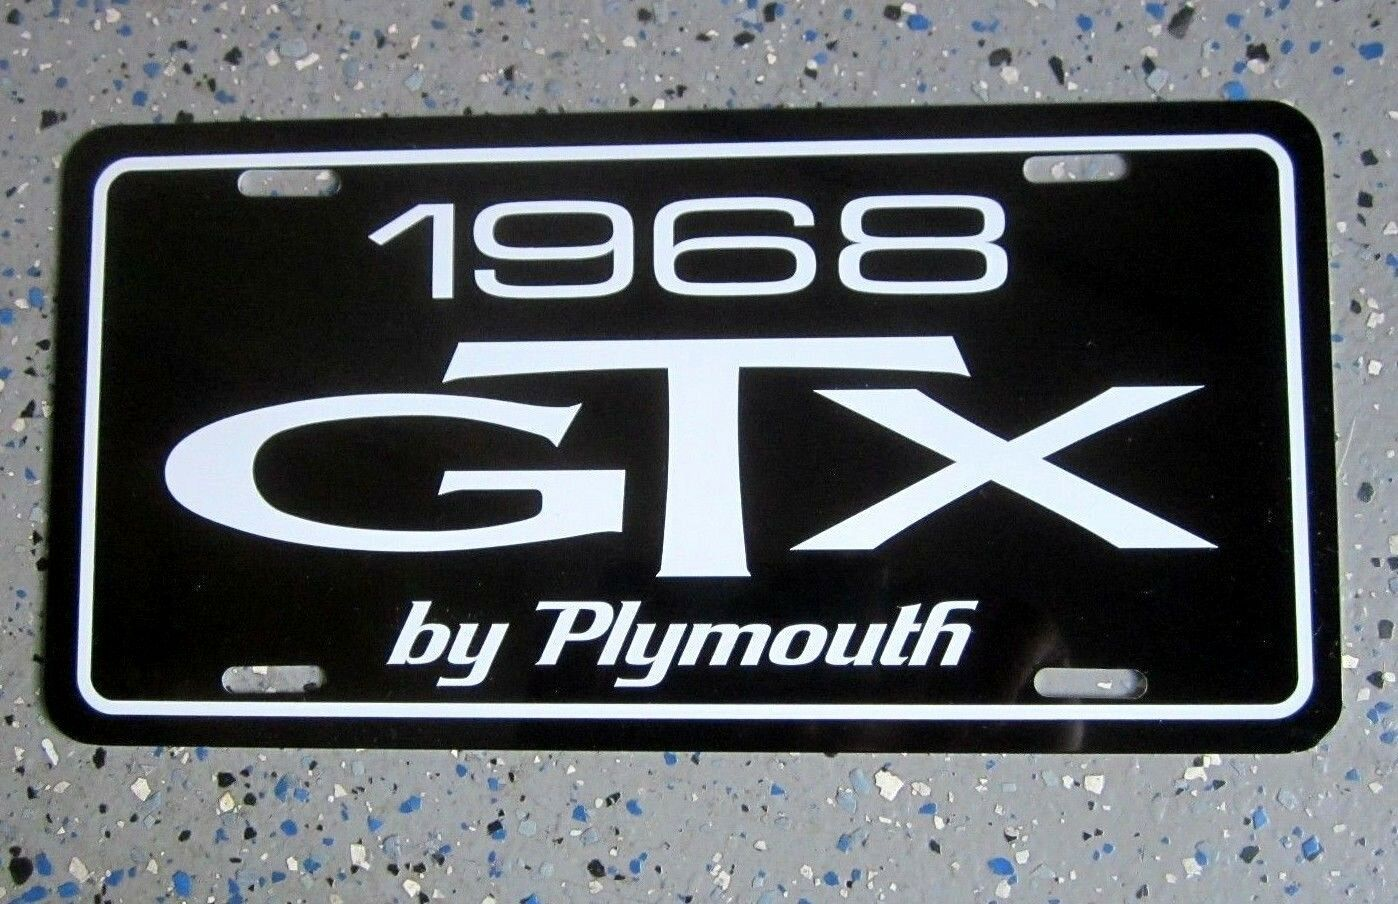 1968 Plymouth Gtx License Plate Car Tag 426 Hemi Super Commando 440 68 Charger Wiring Diagram 1 Of 3only 4 Available